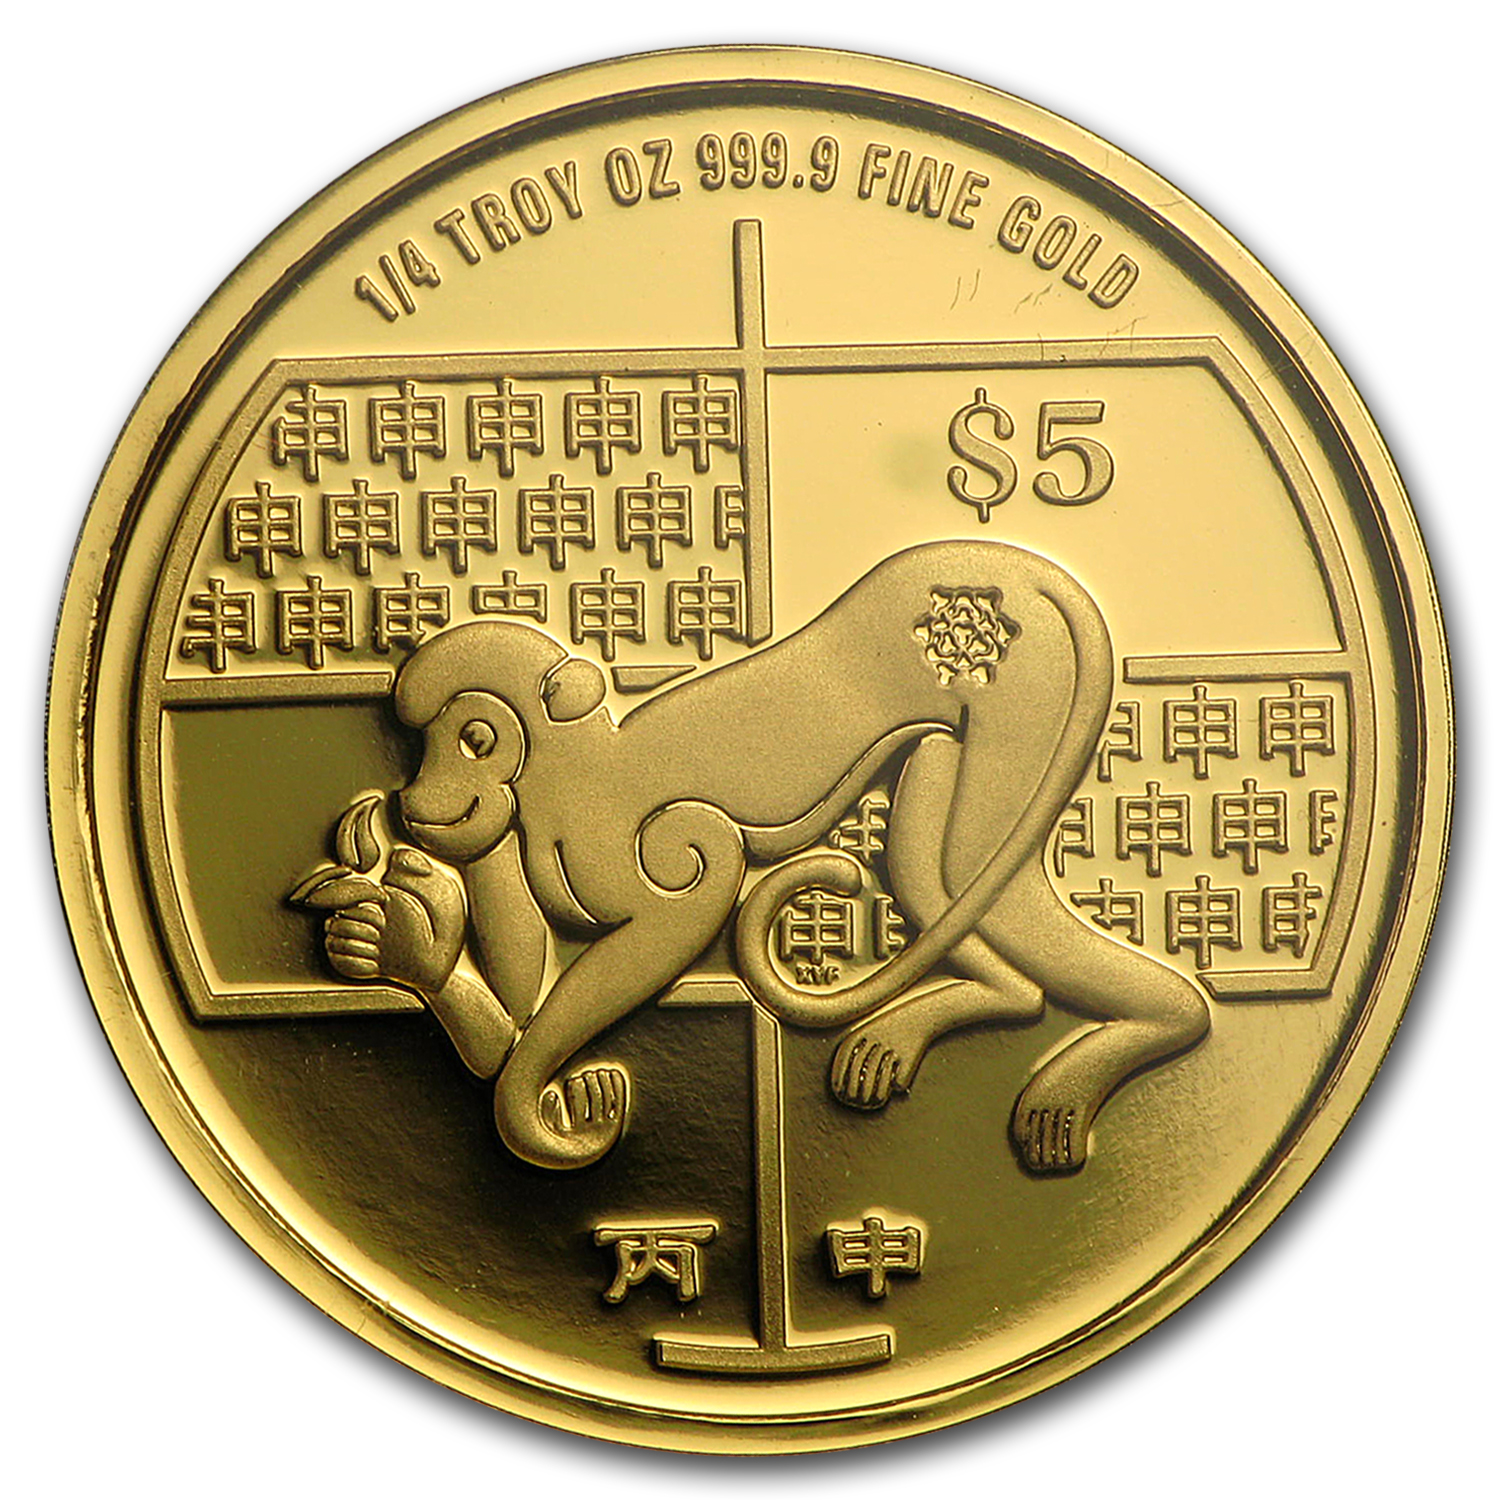 2016 Singapore 1/4 oz Proof Gold Year of the Monkey Coin